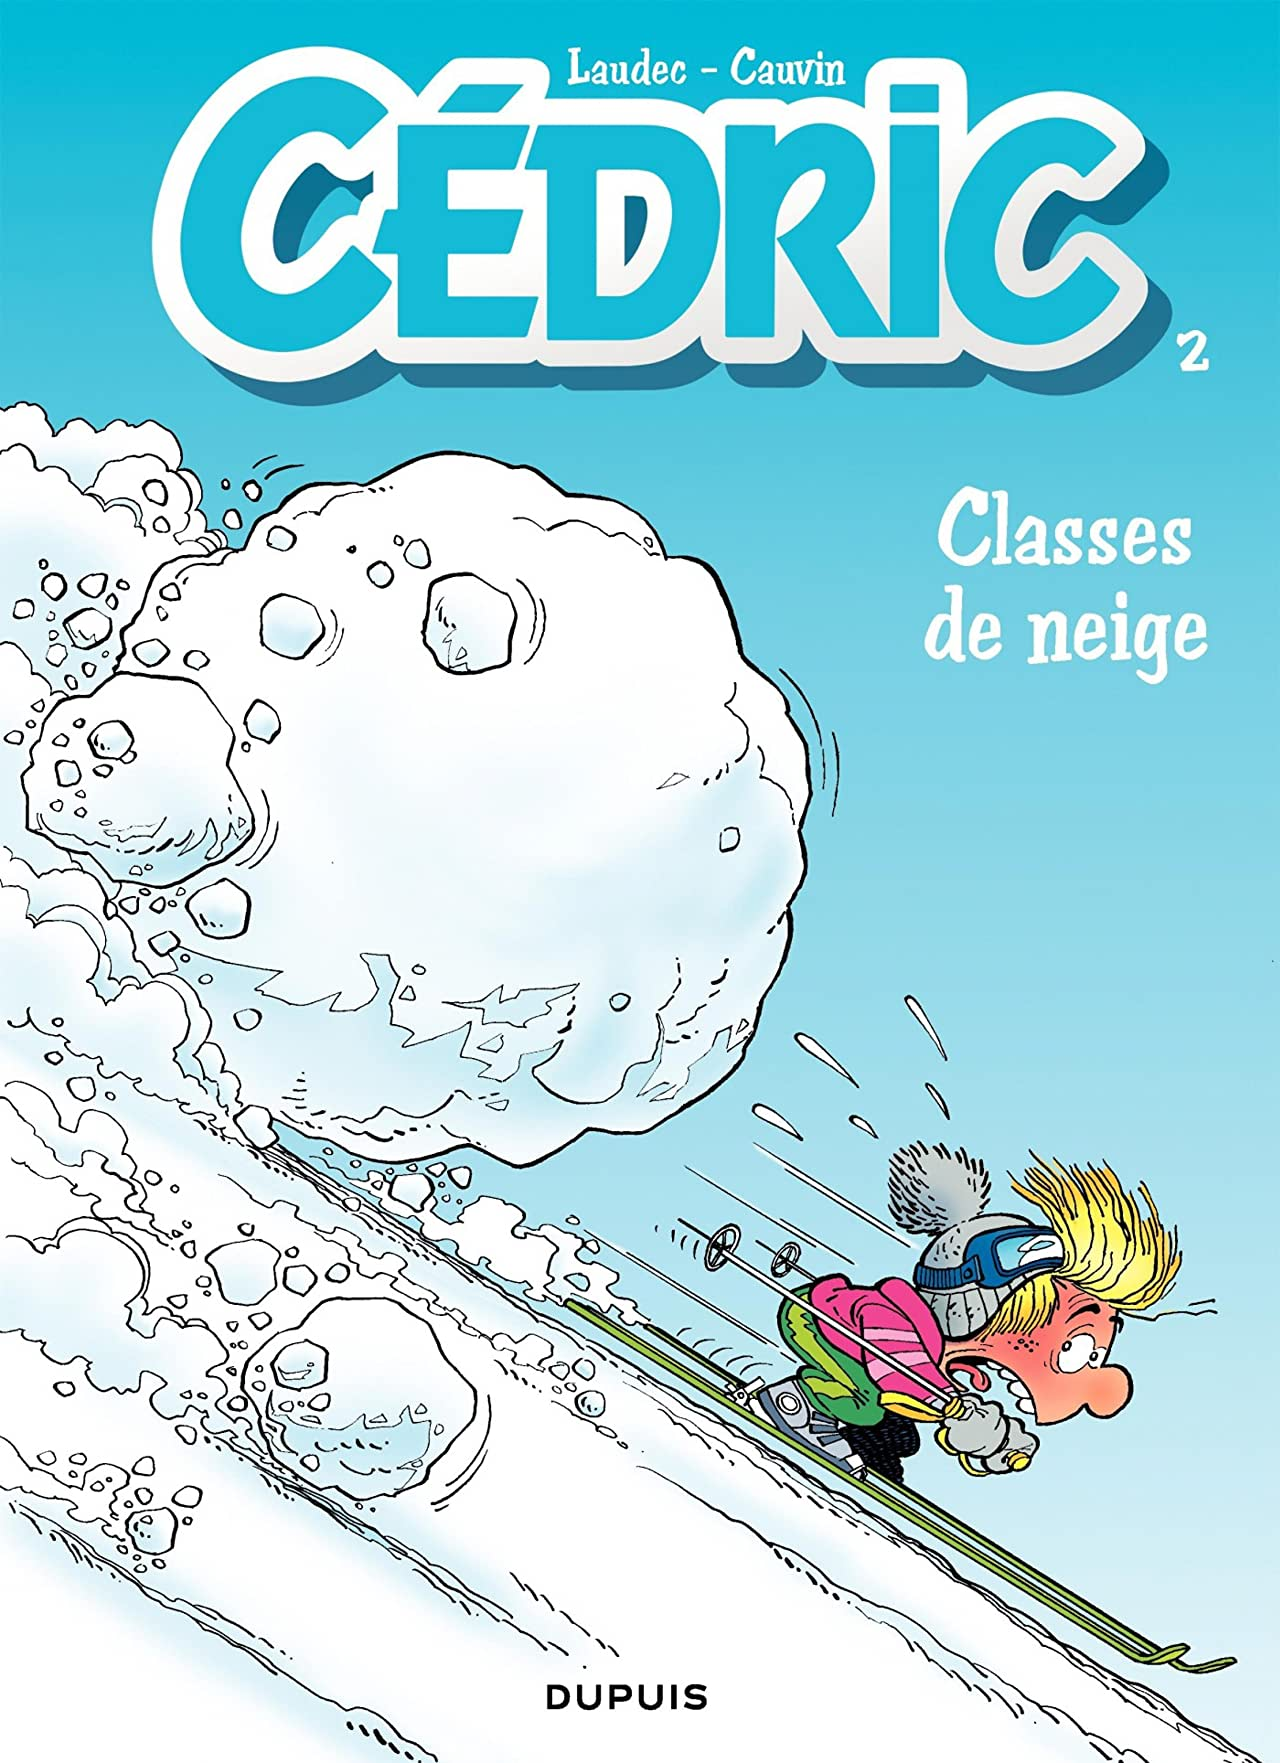 Cédric Vol. 2: Classes de neige